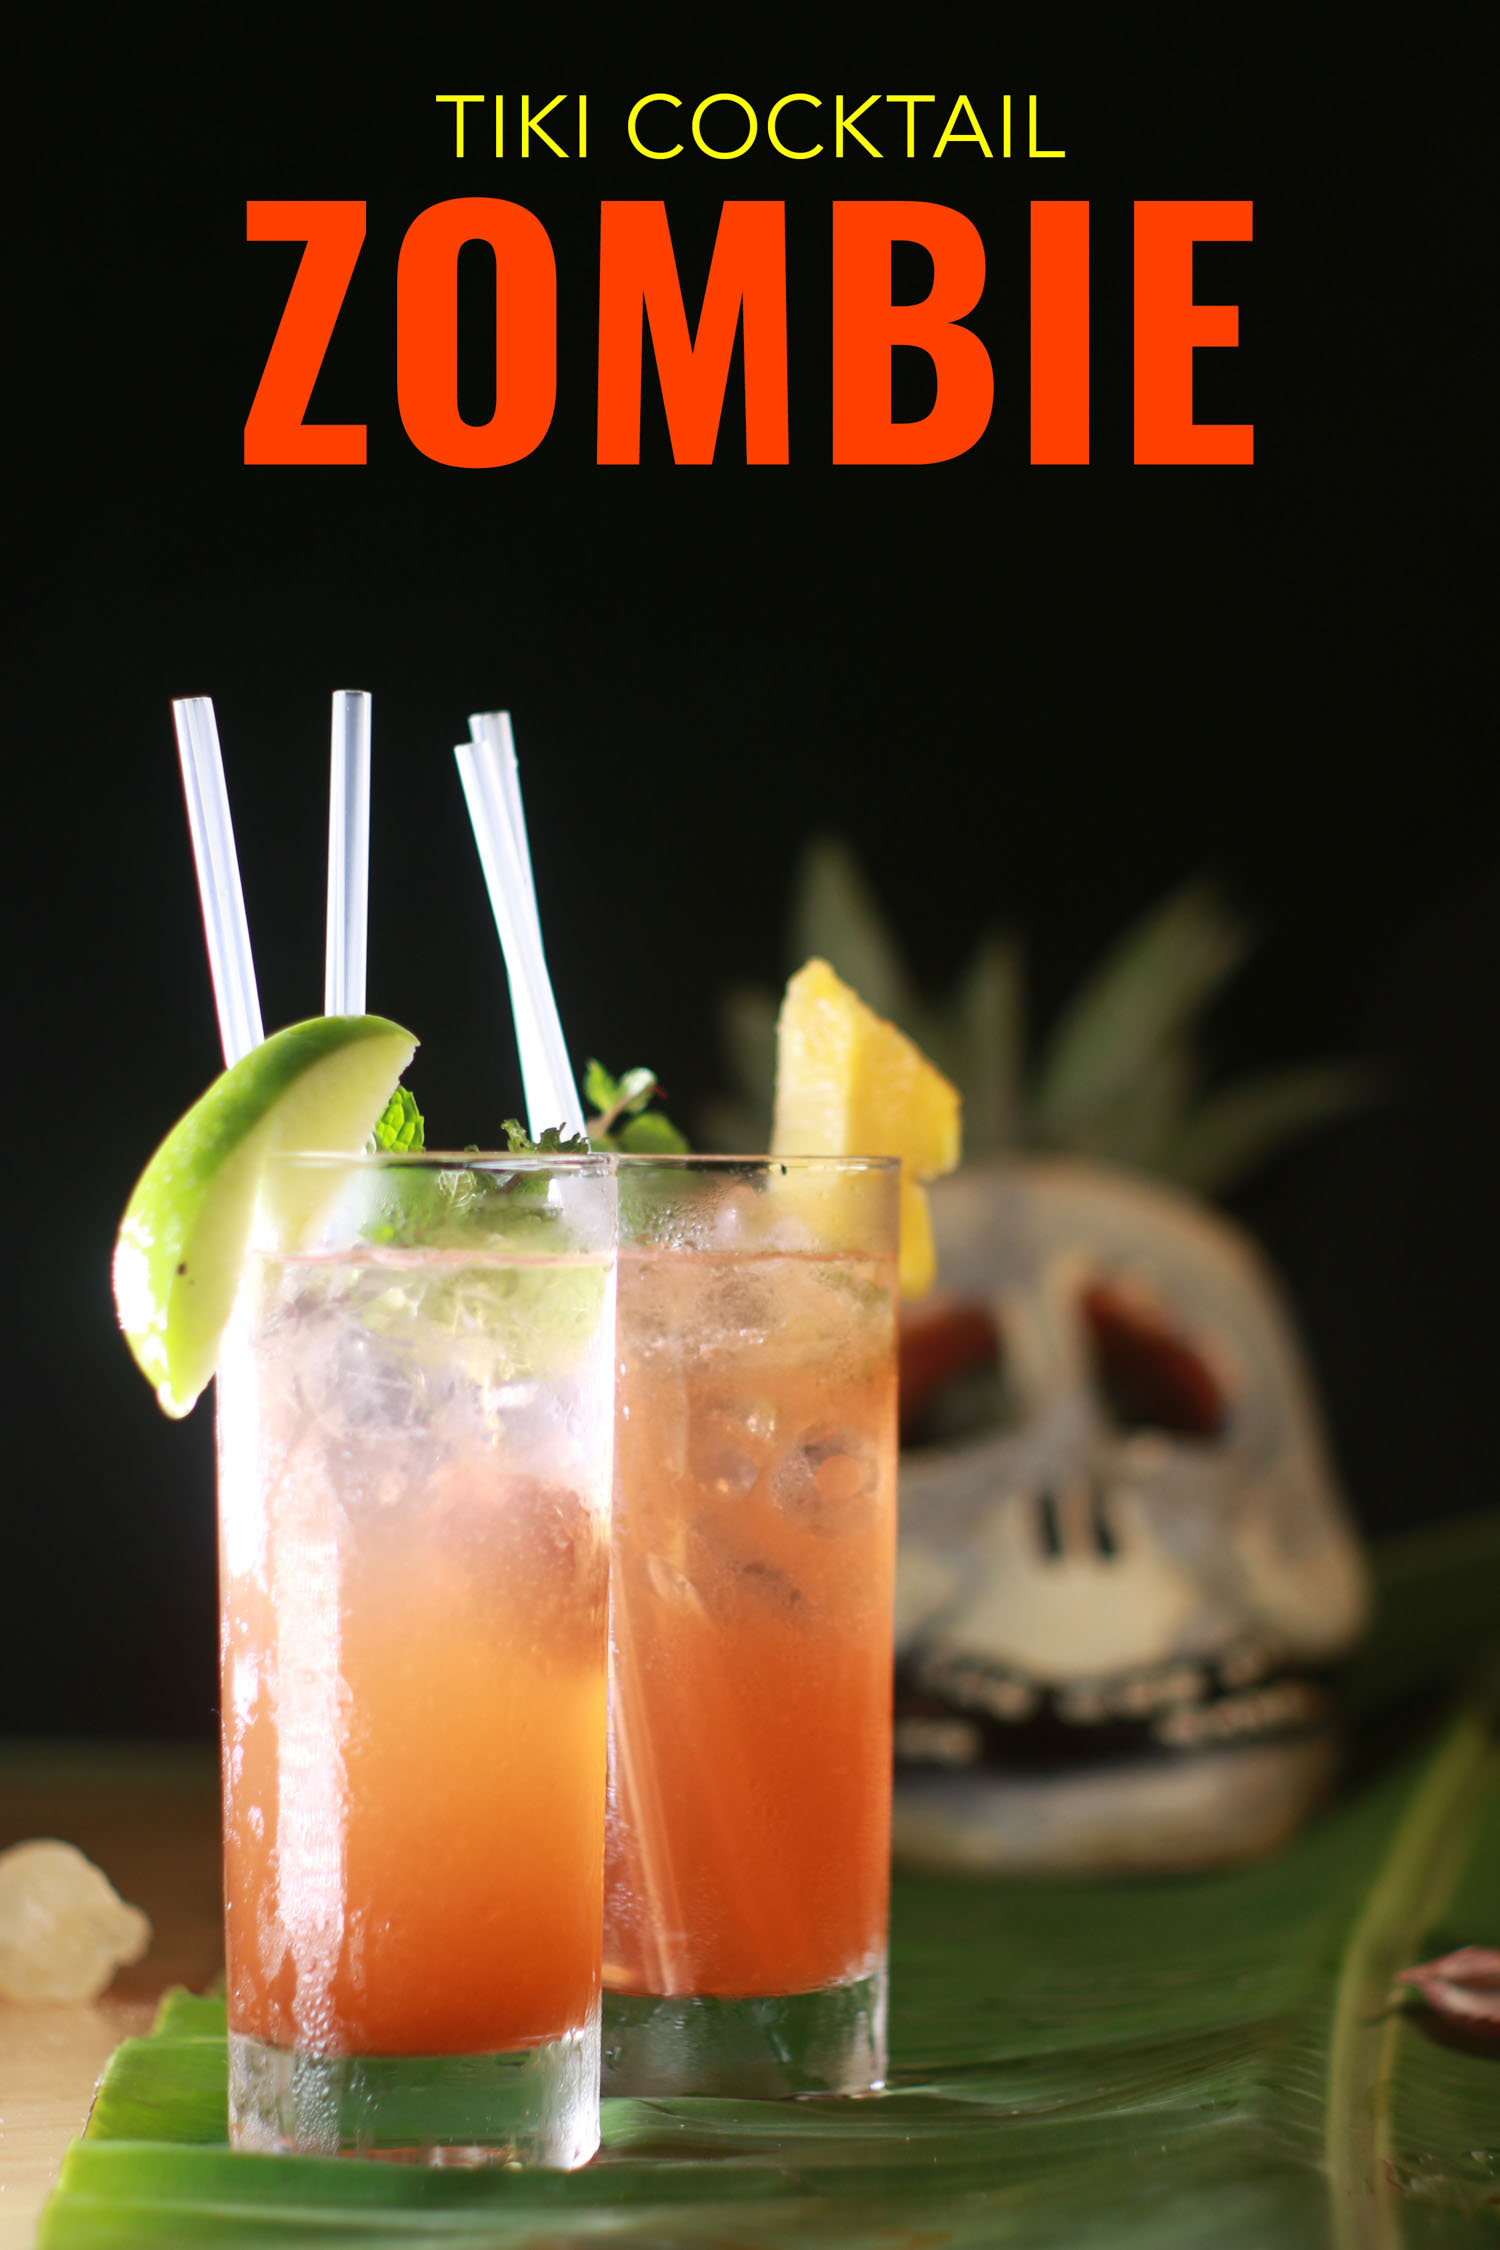 Tiki cocktail called the zombie with a skull behind it